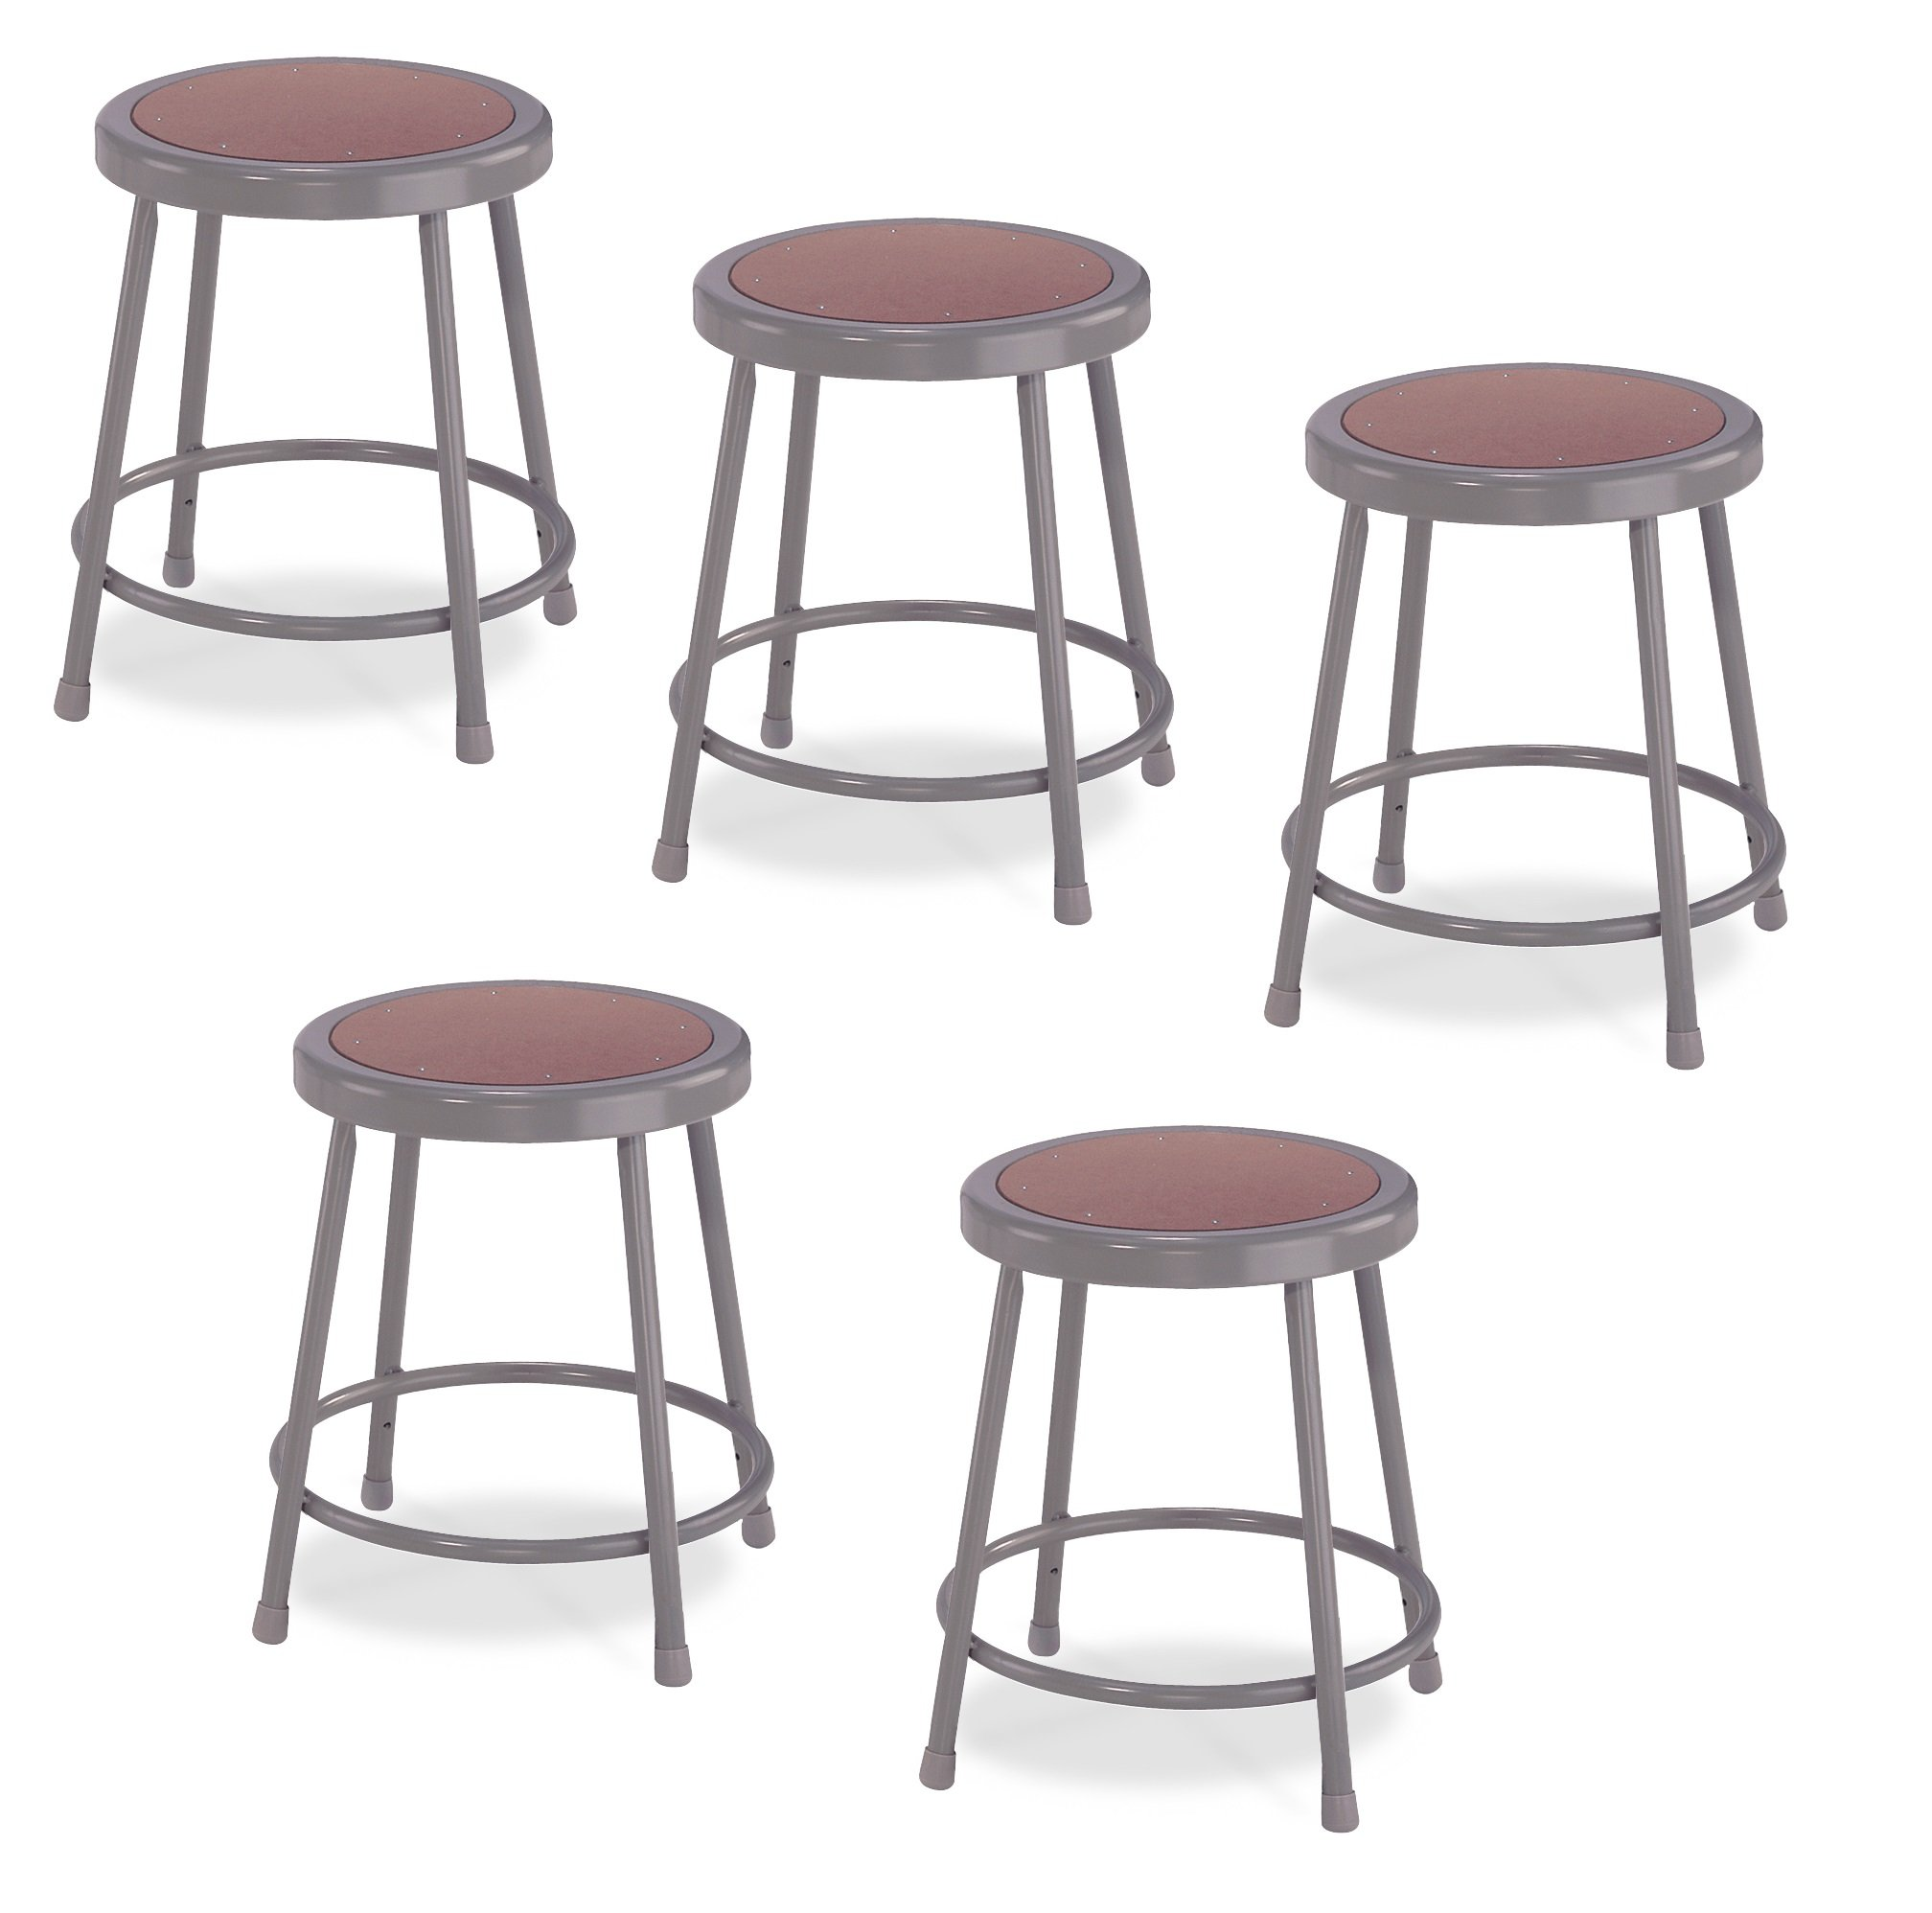 (5 Pack) National Public Seating 18'' Heavy Duty Steel Stool, Grey by National Public Seating